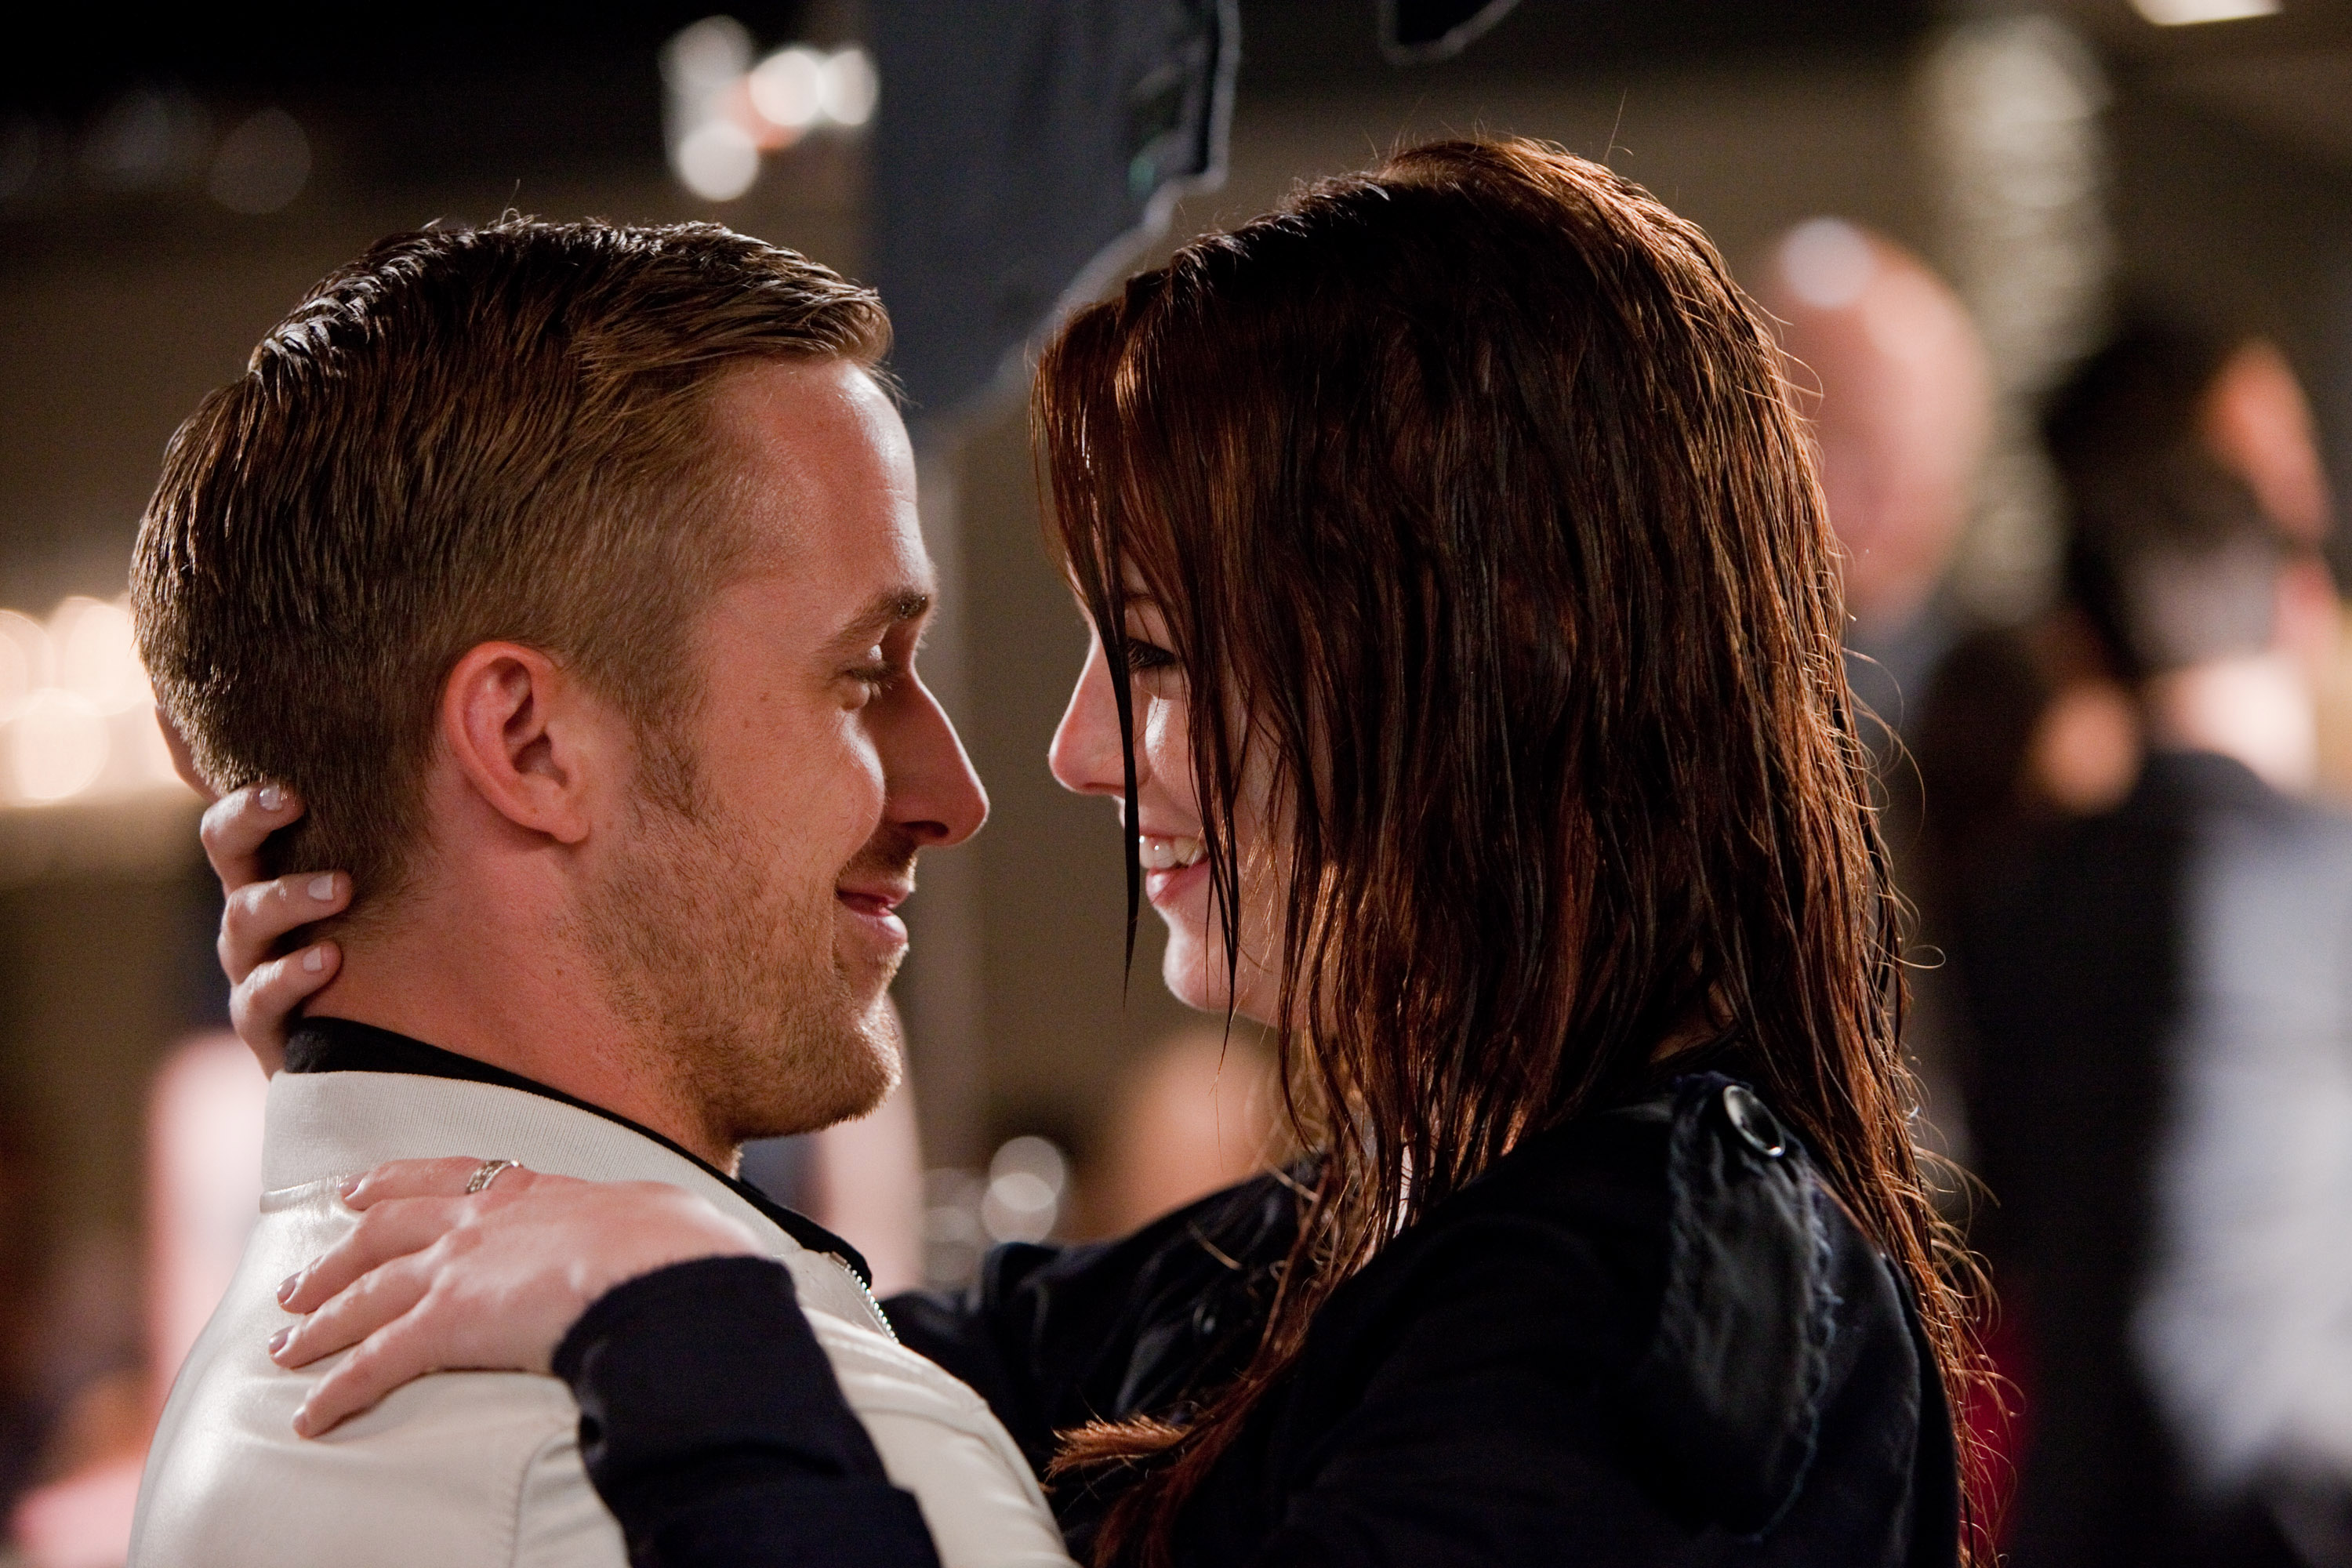 Here's a new pic from Emma Stone and Ryan Gosling's new movie together